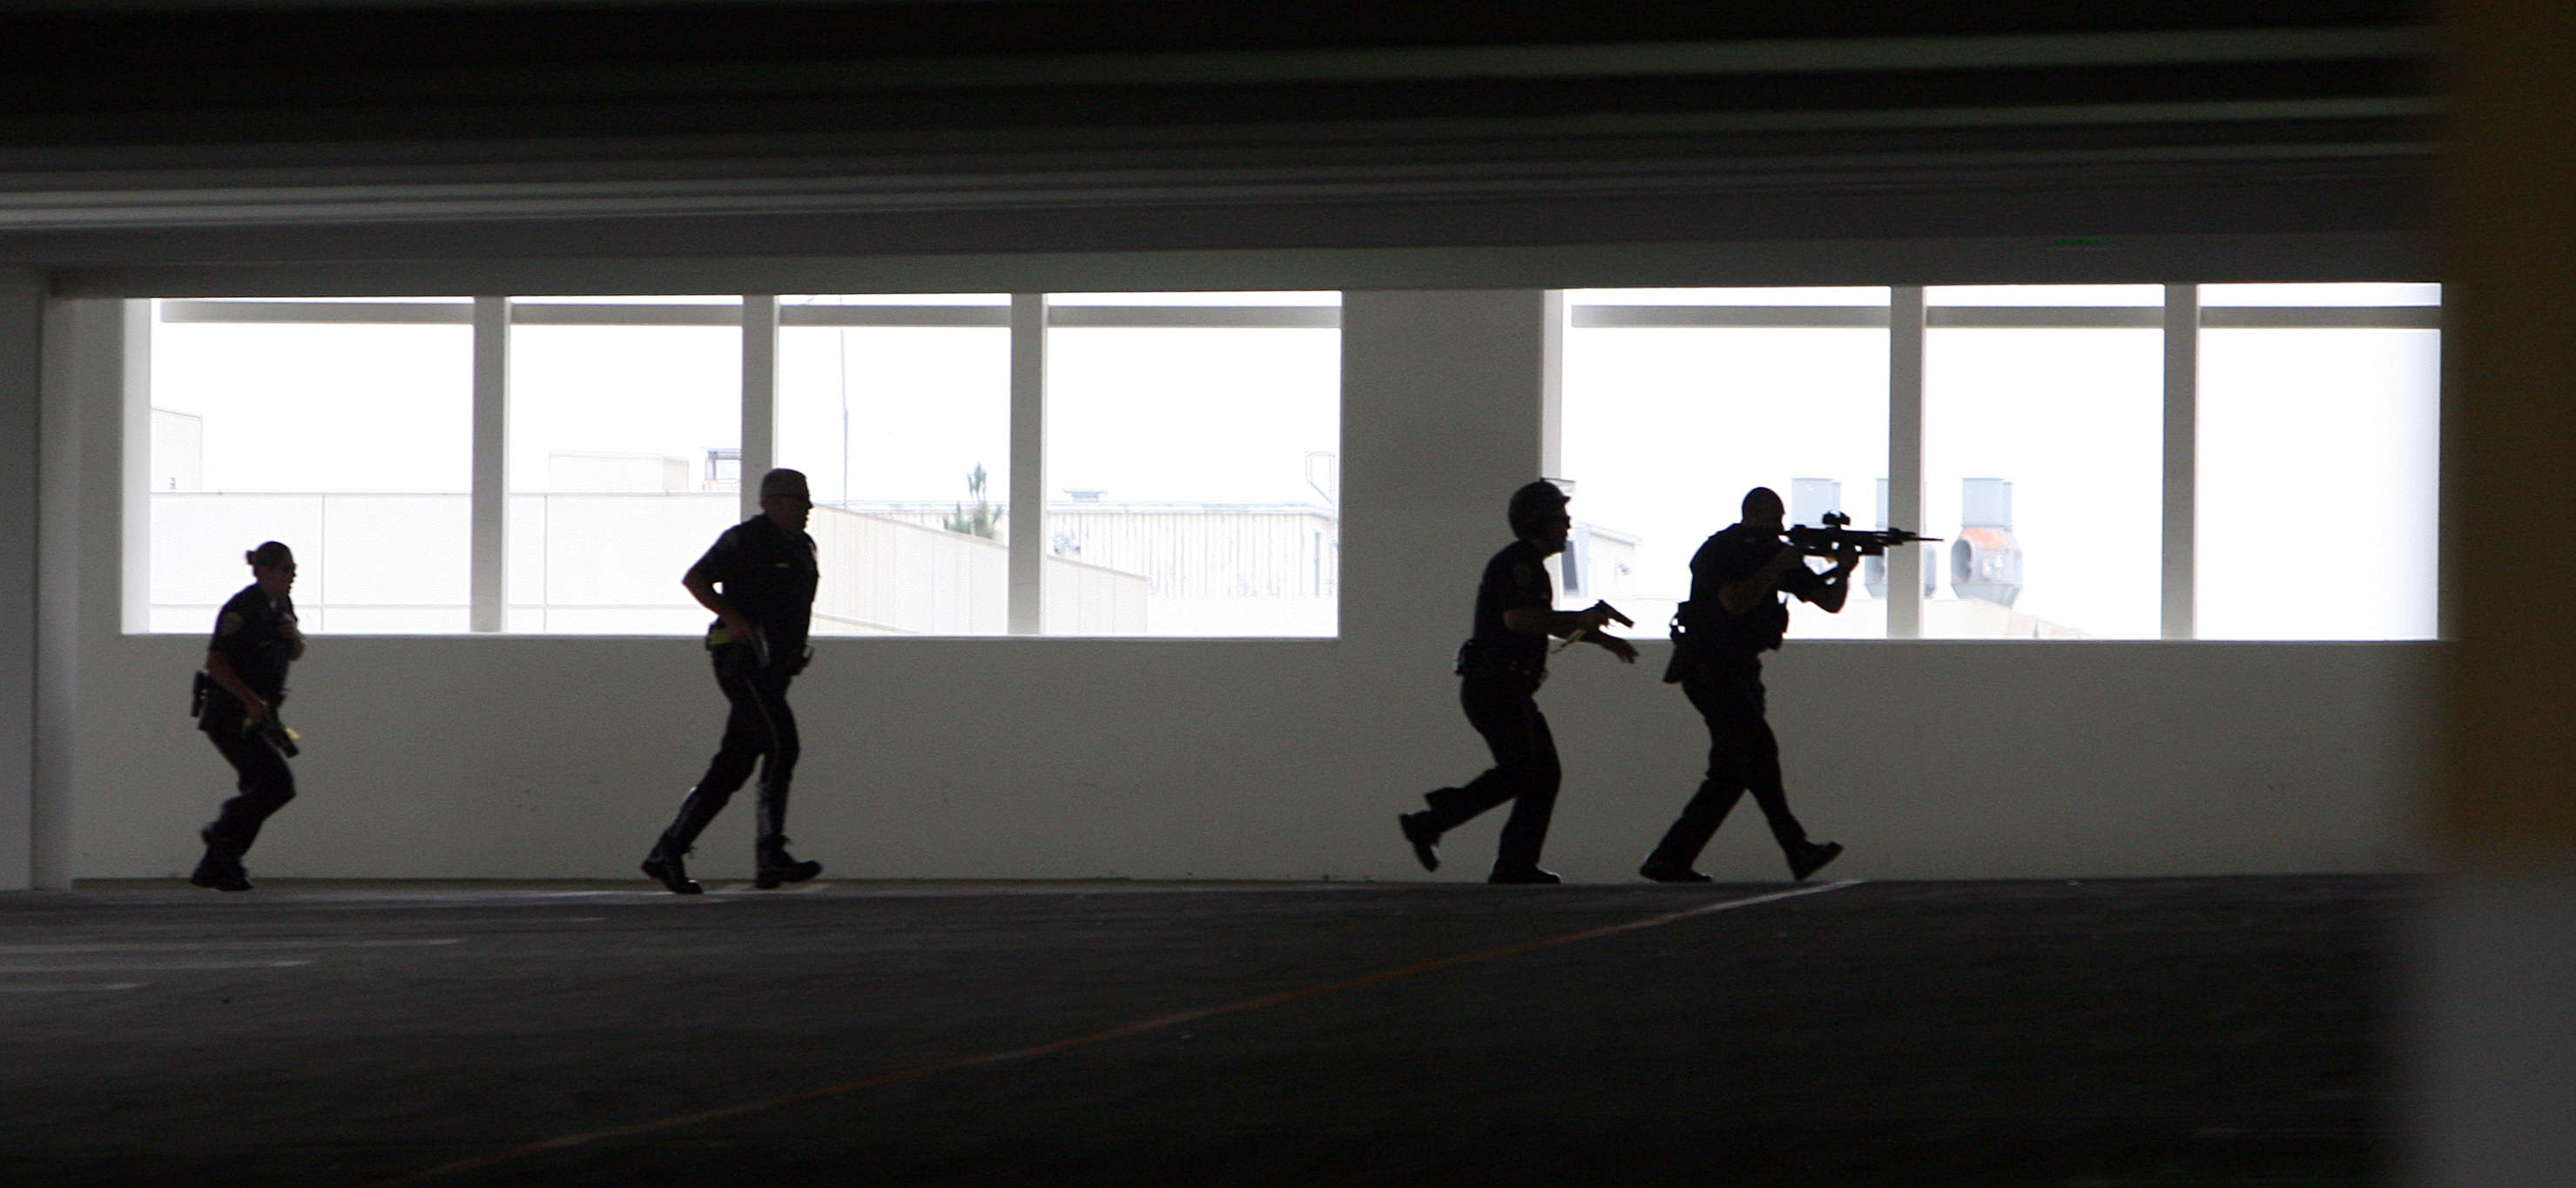 police exercise